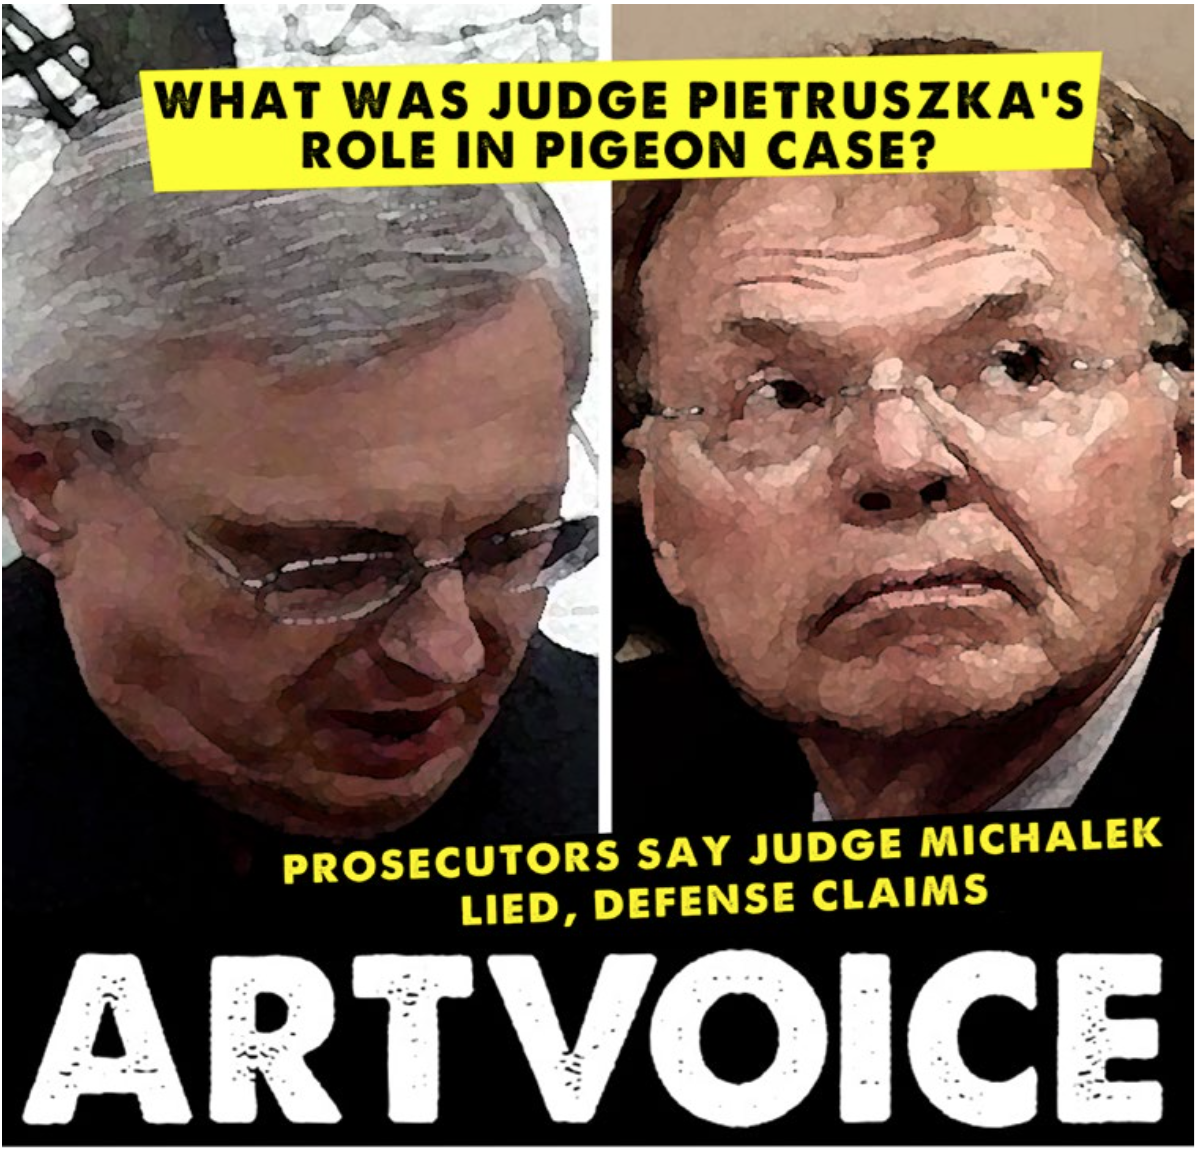 Judge Pietruszka had role in assigning counsel to witness ...